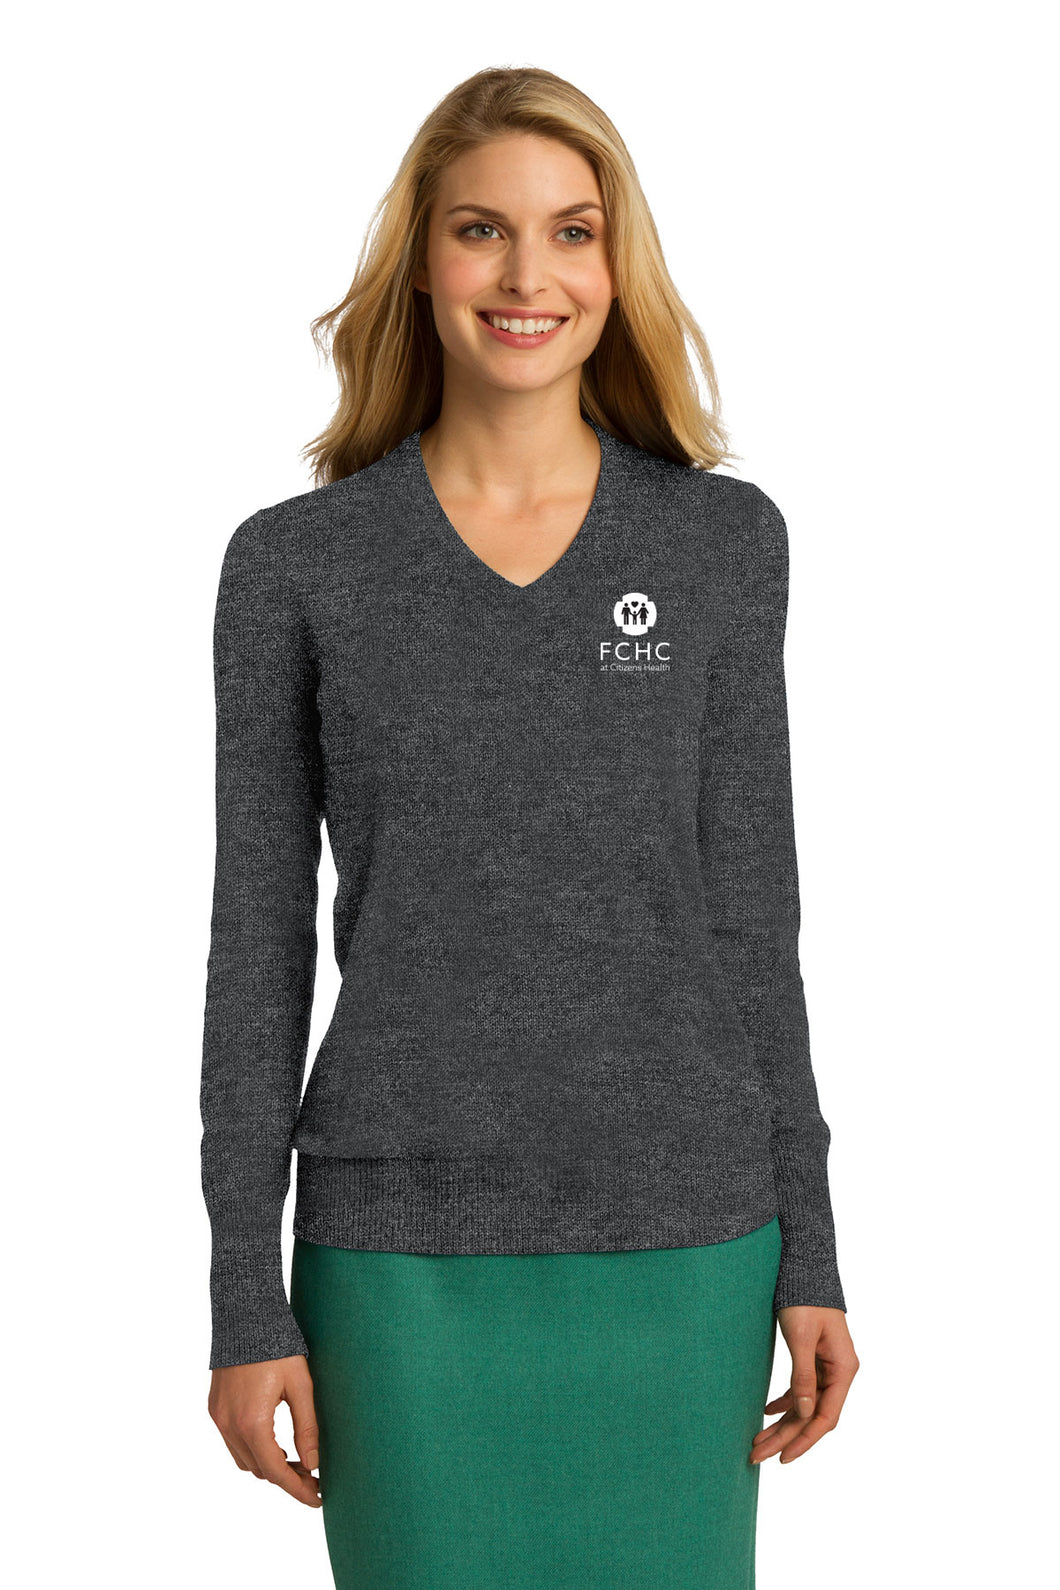 Port Authority® Ladies V-Neck Sweater - FCHC